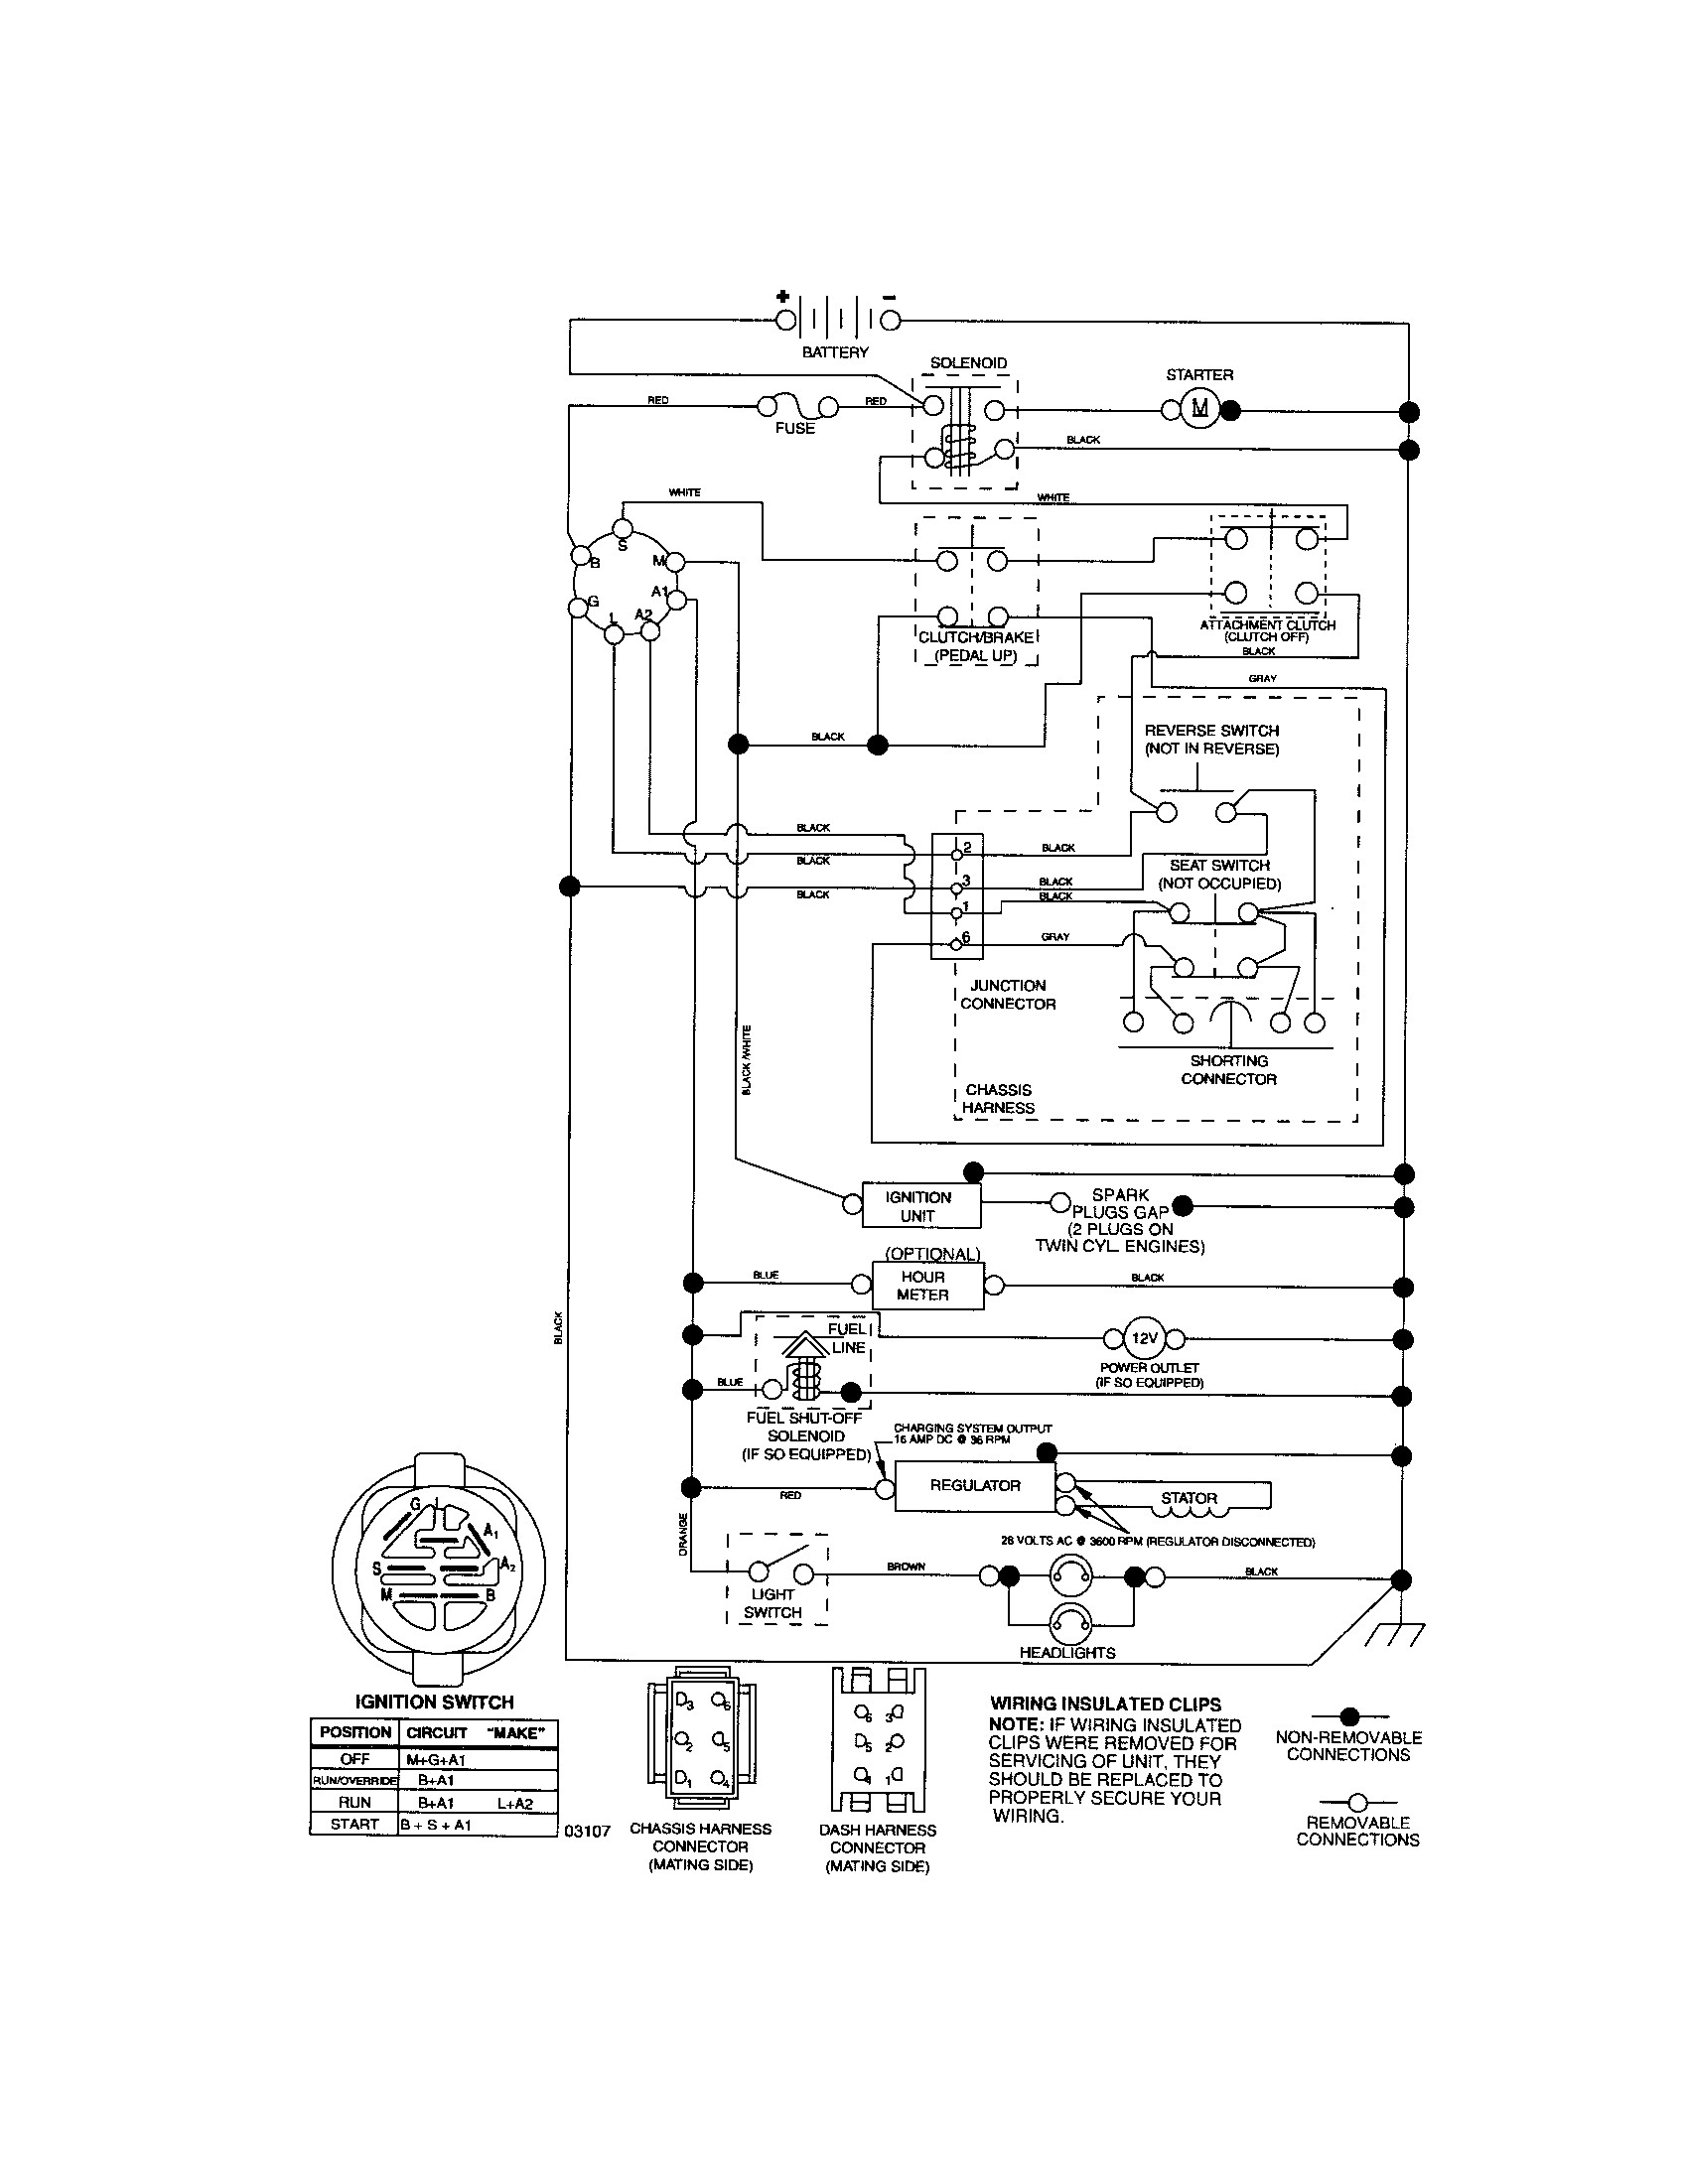 Jd 318 Lawn Tractor Wire Diagram Om 0281] Murray Riding Lawn Mower Wiring Diagram Free Diagram Of Jd 318 Lawn Tractor Wire Diagram